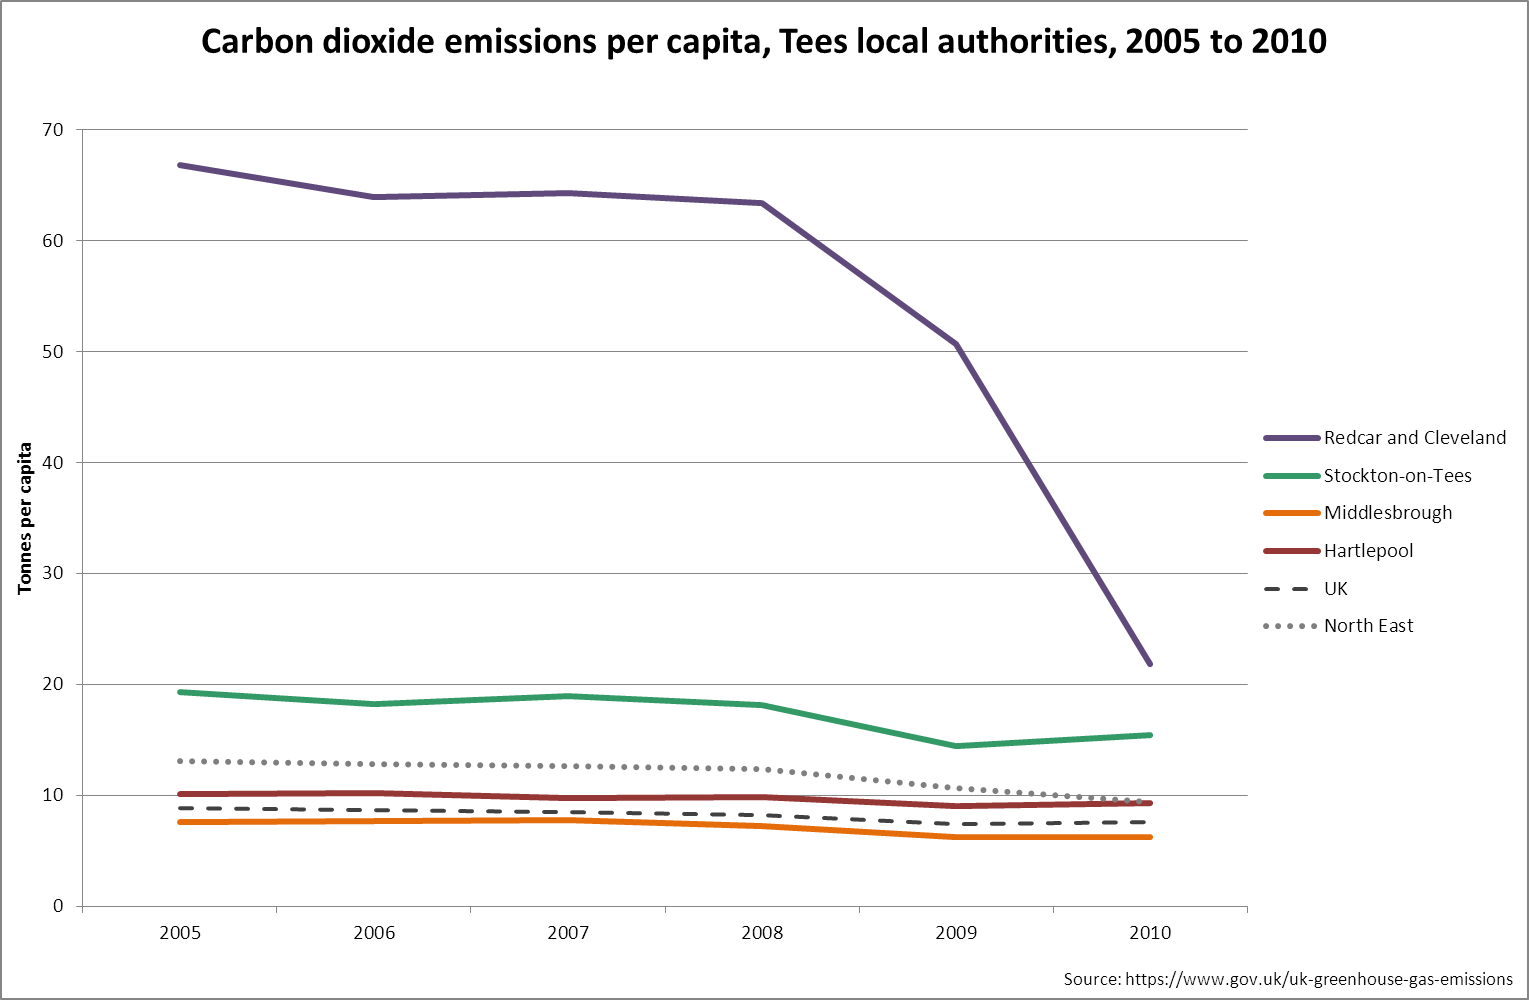 carbon dioxide emissions trend, Tees, 2005-2010